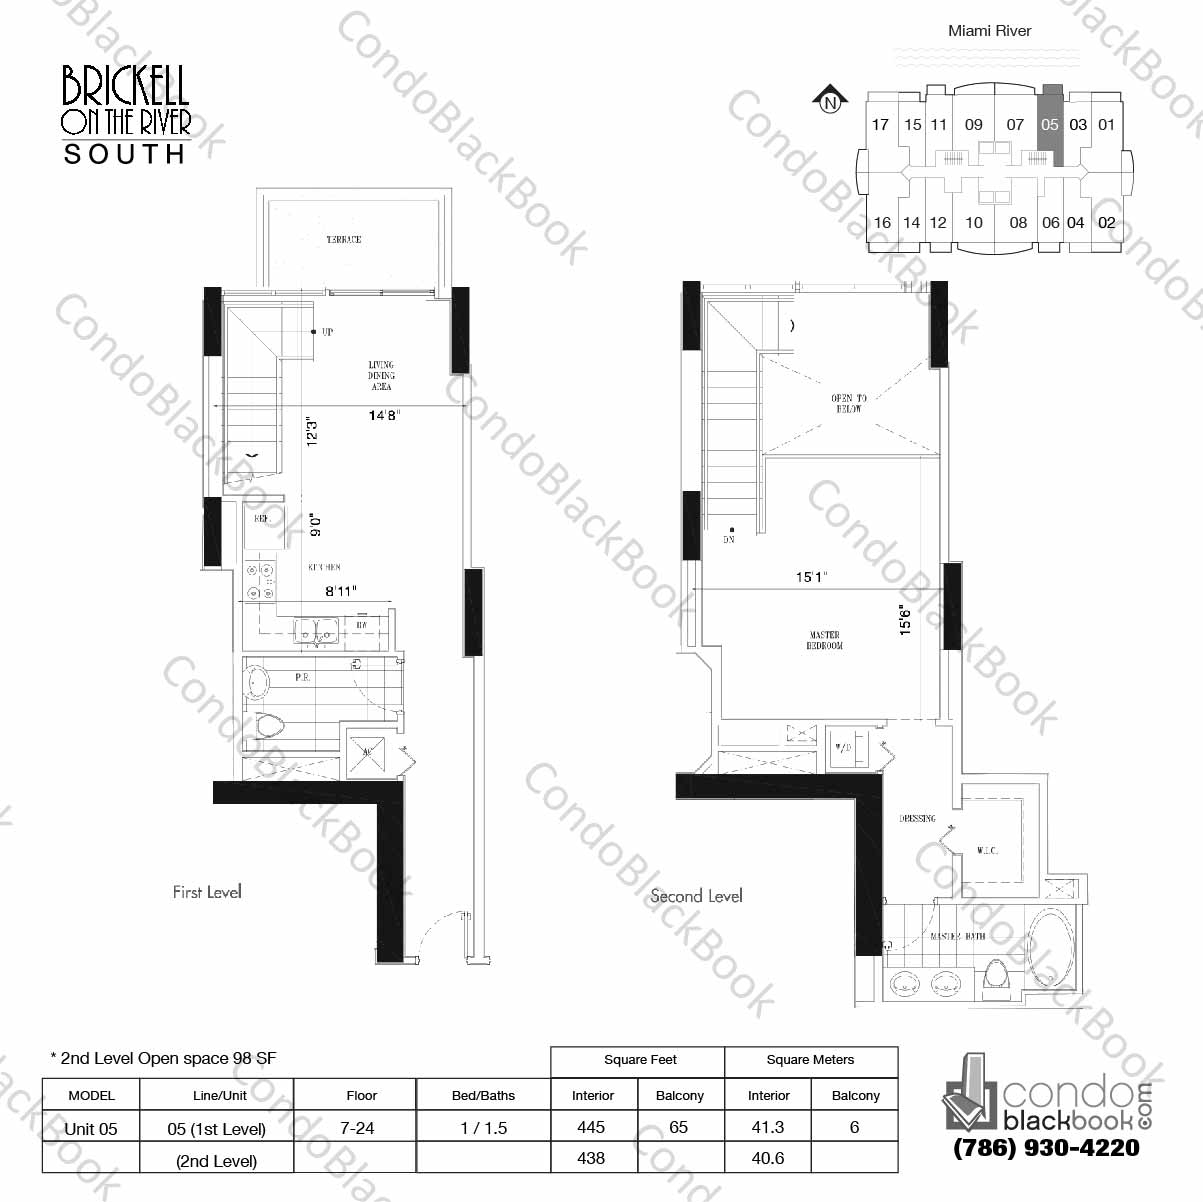 Floor plan for Brickell on the River North Brickell Miami, model Unit 05, line 05, 1/1.5 bedrooms, 883 sq ft